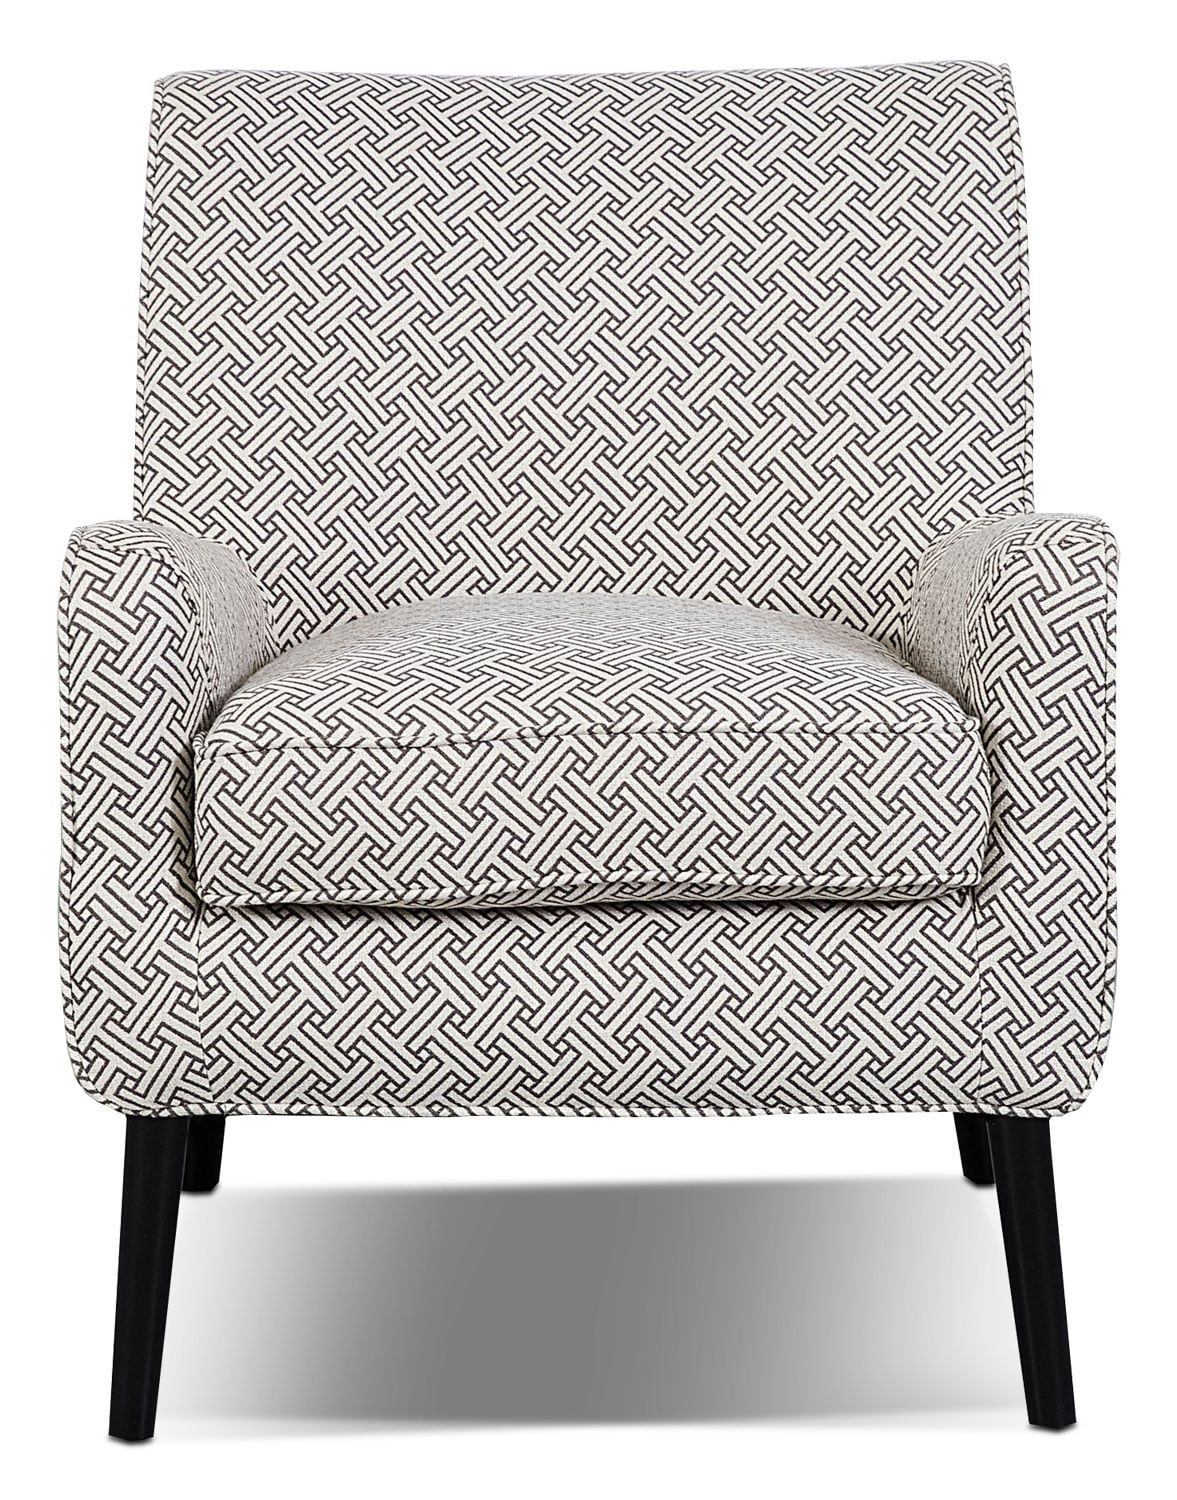 $699.97 Grimsby Accent Chair. Covered In Cream Coloured Linen Like  Upholstery, With A Dark Grey Pattern